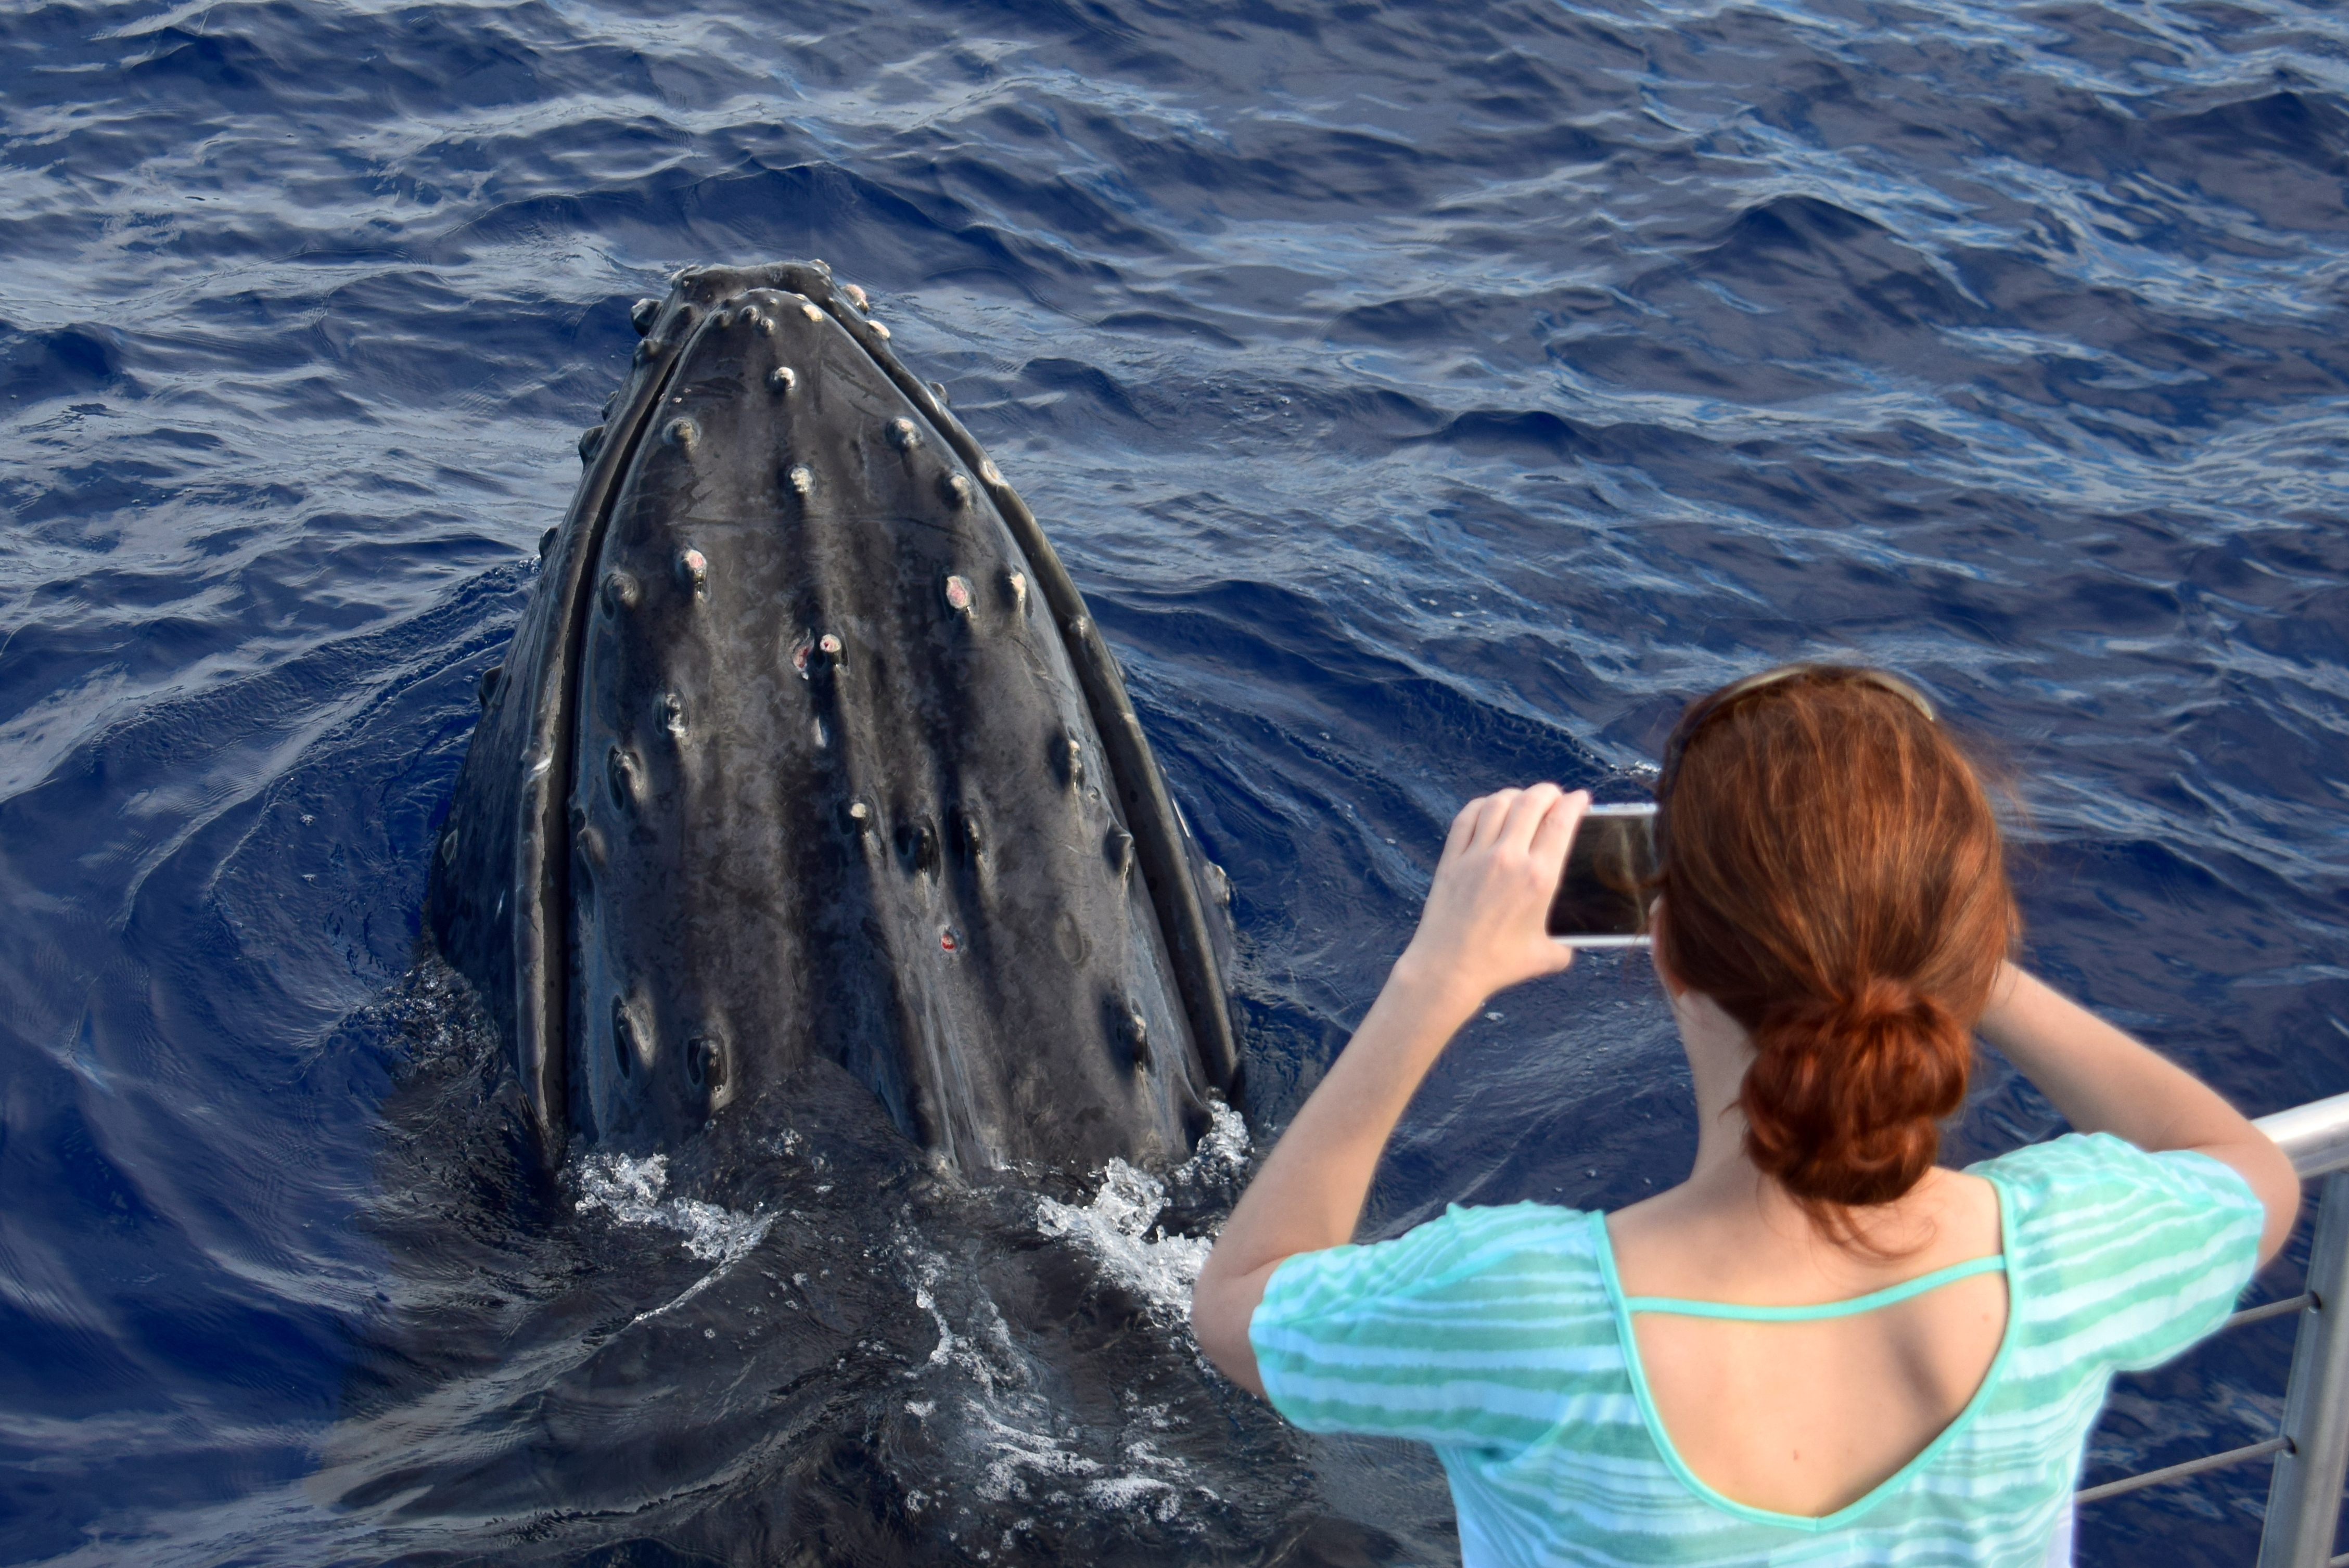 Whale watcher taking close-up photo of whale in water